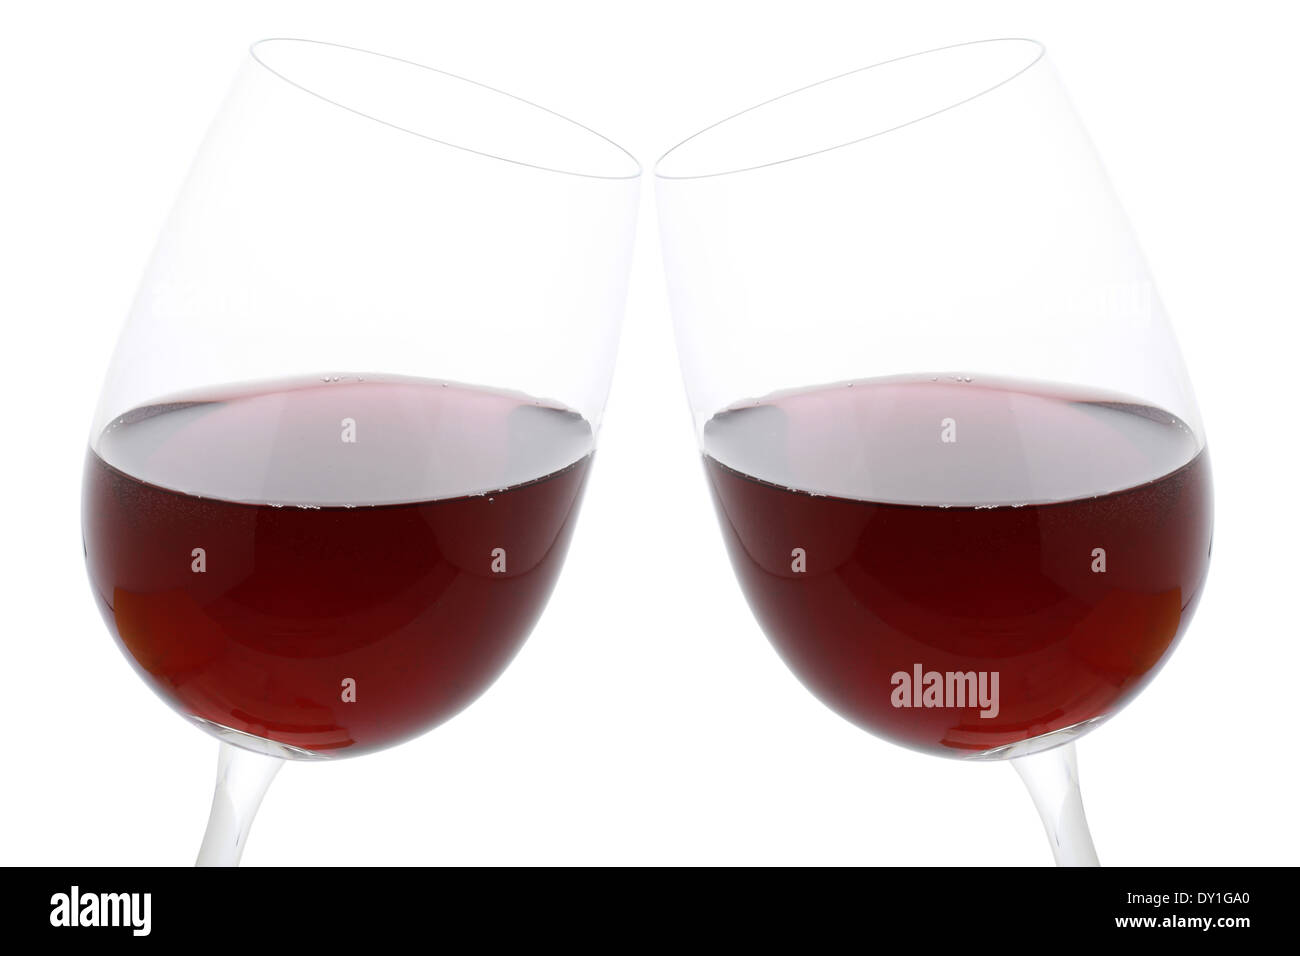 Clink glasses with red wine, isolated on a white background - Stock Image